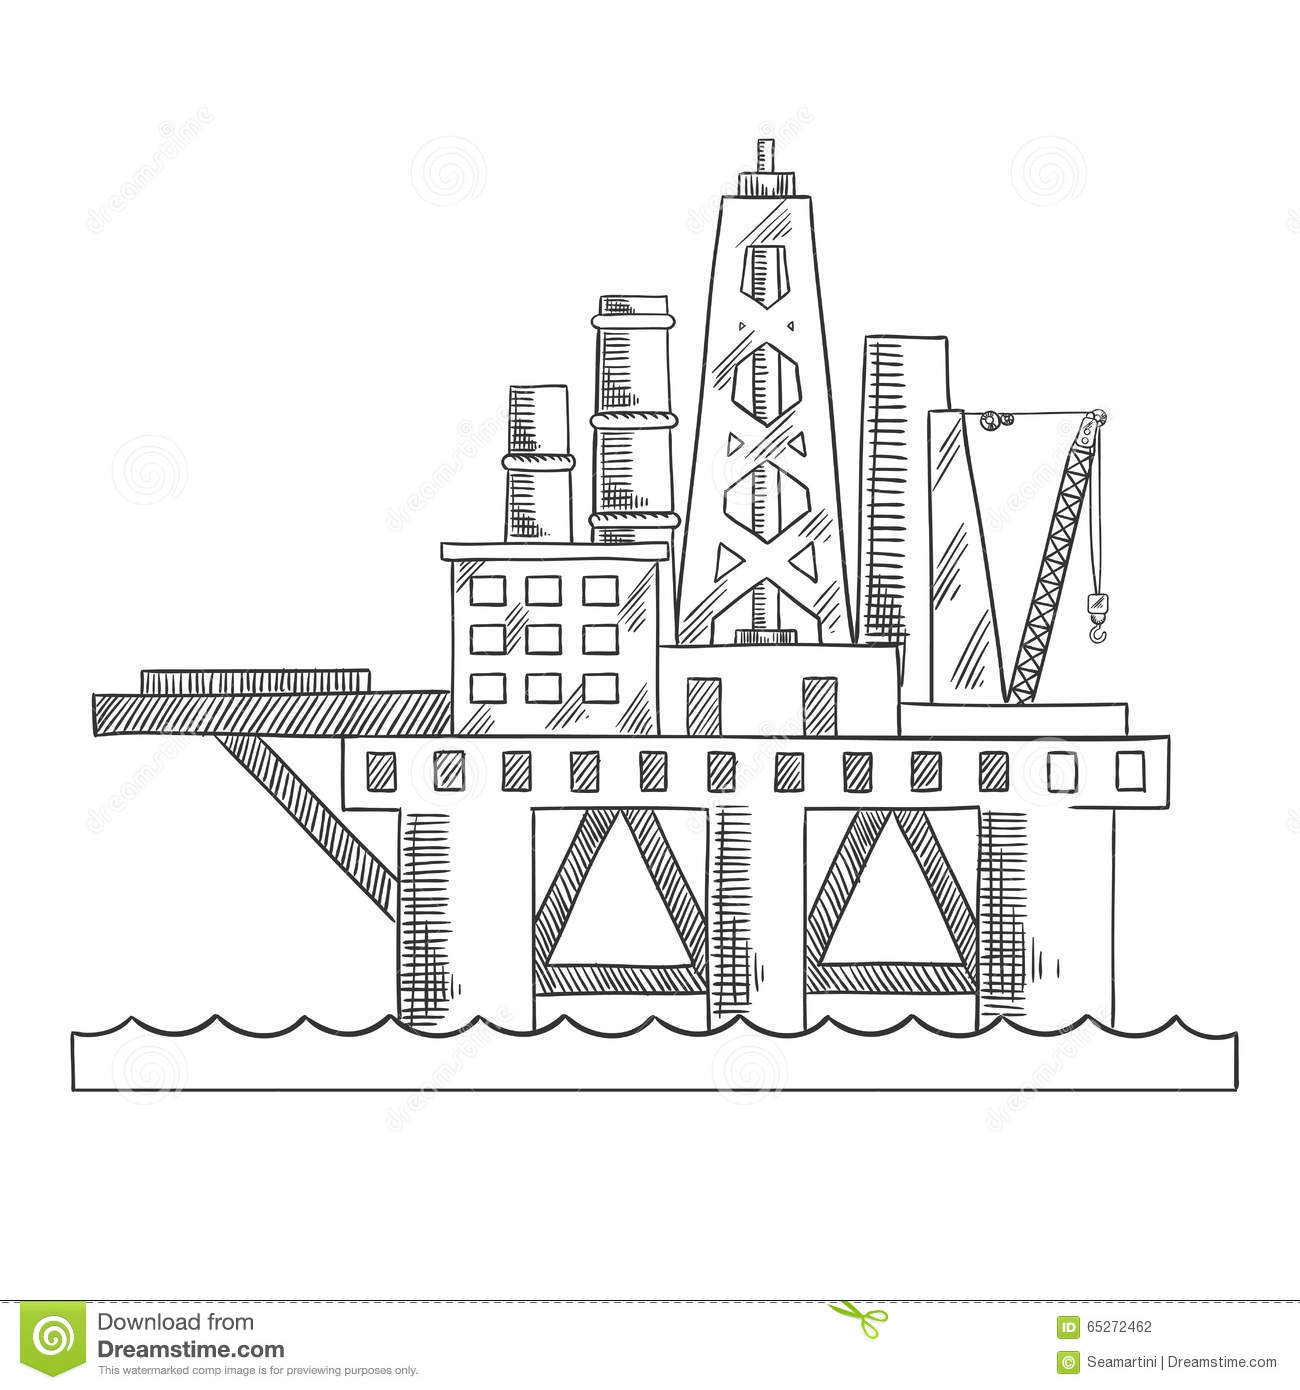 sea platform drilling offshore oil stock vector image Oil Derrick Clip Art Transparent Oil Derrick Clip Art Transparent